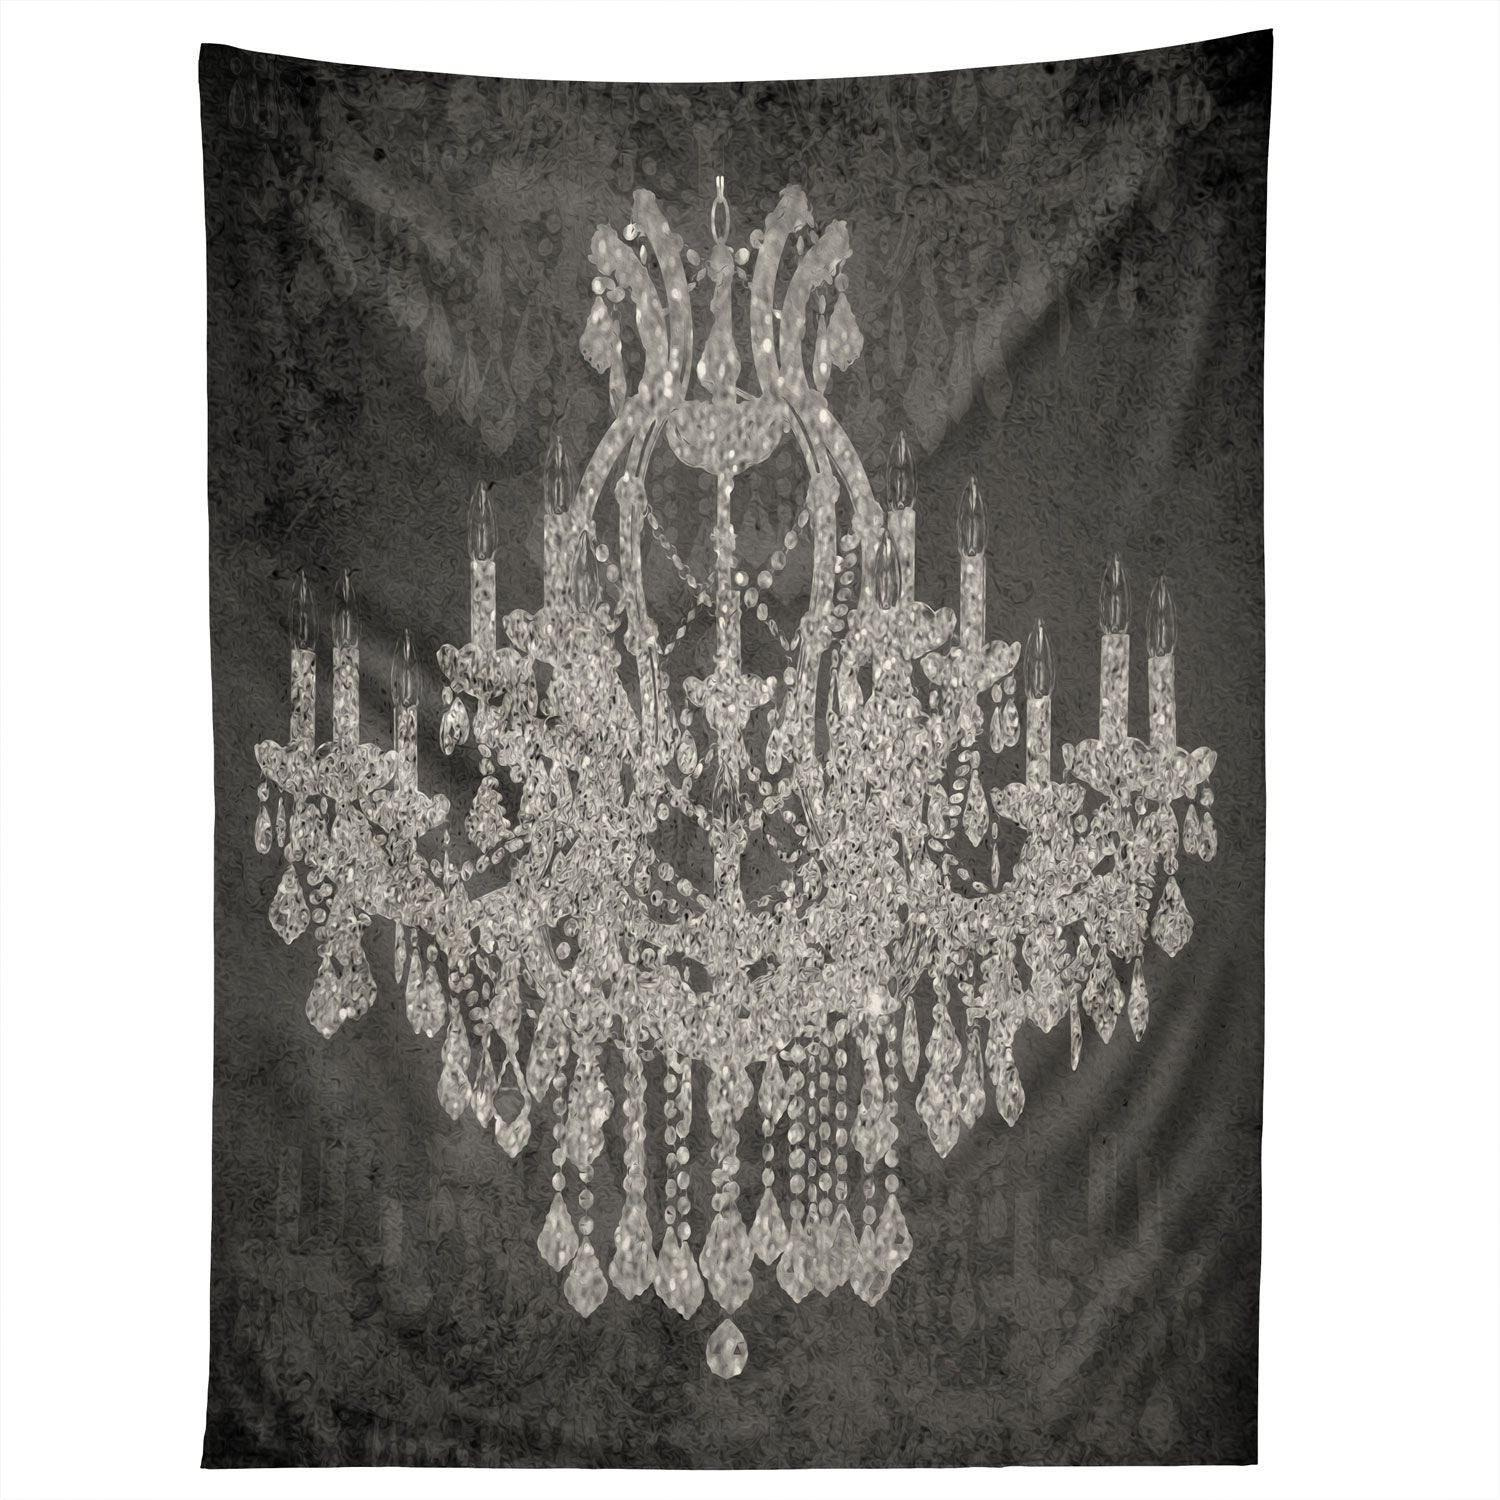 Chandelier Tapestry